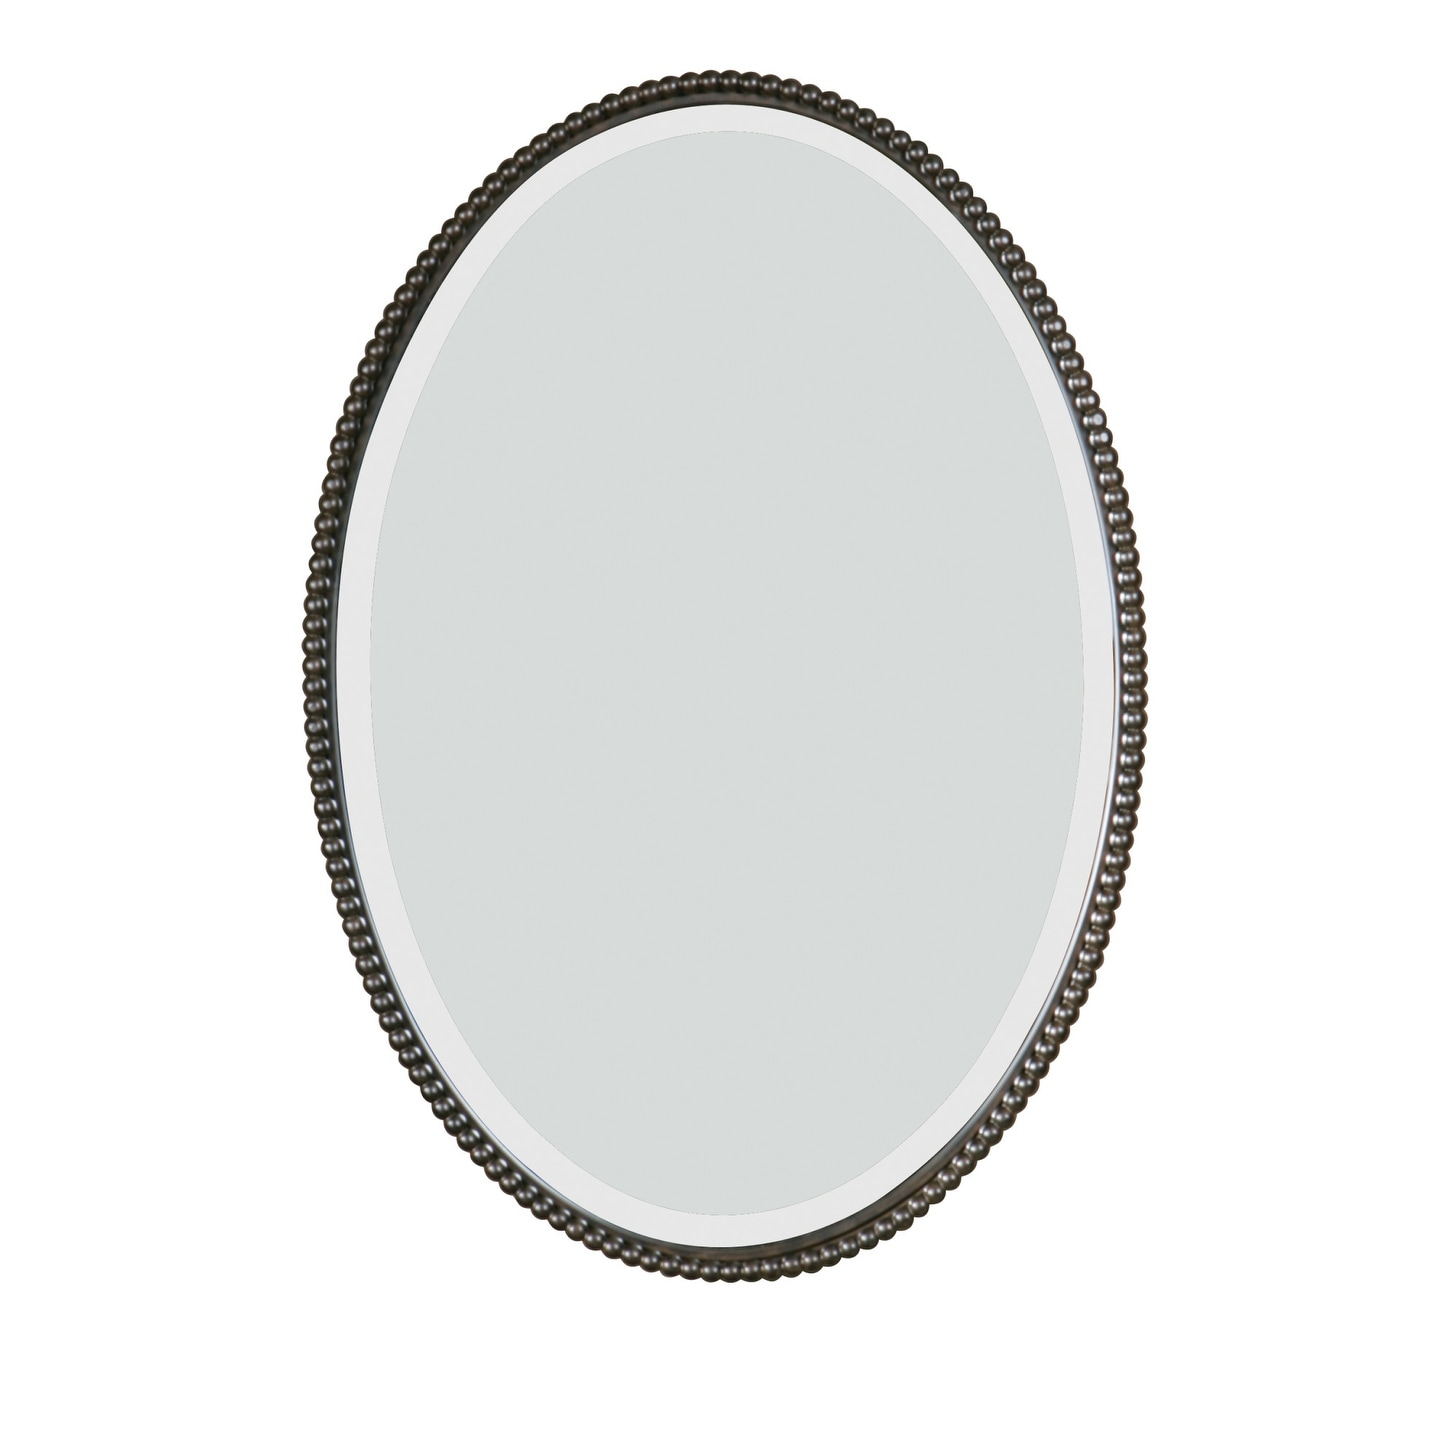 Uttermost 01101 B Sherise Oval Vanity Bathroom Wall Mirror With Beaded Oil Rubbed Bronze Overstock 22921555